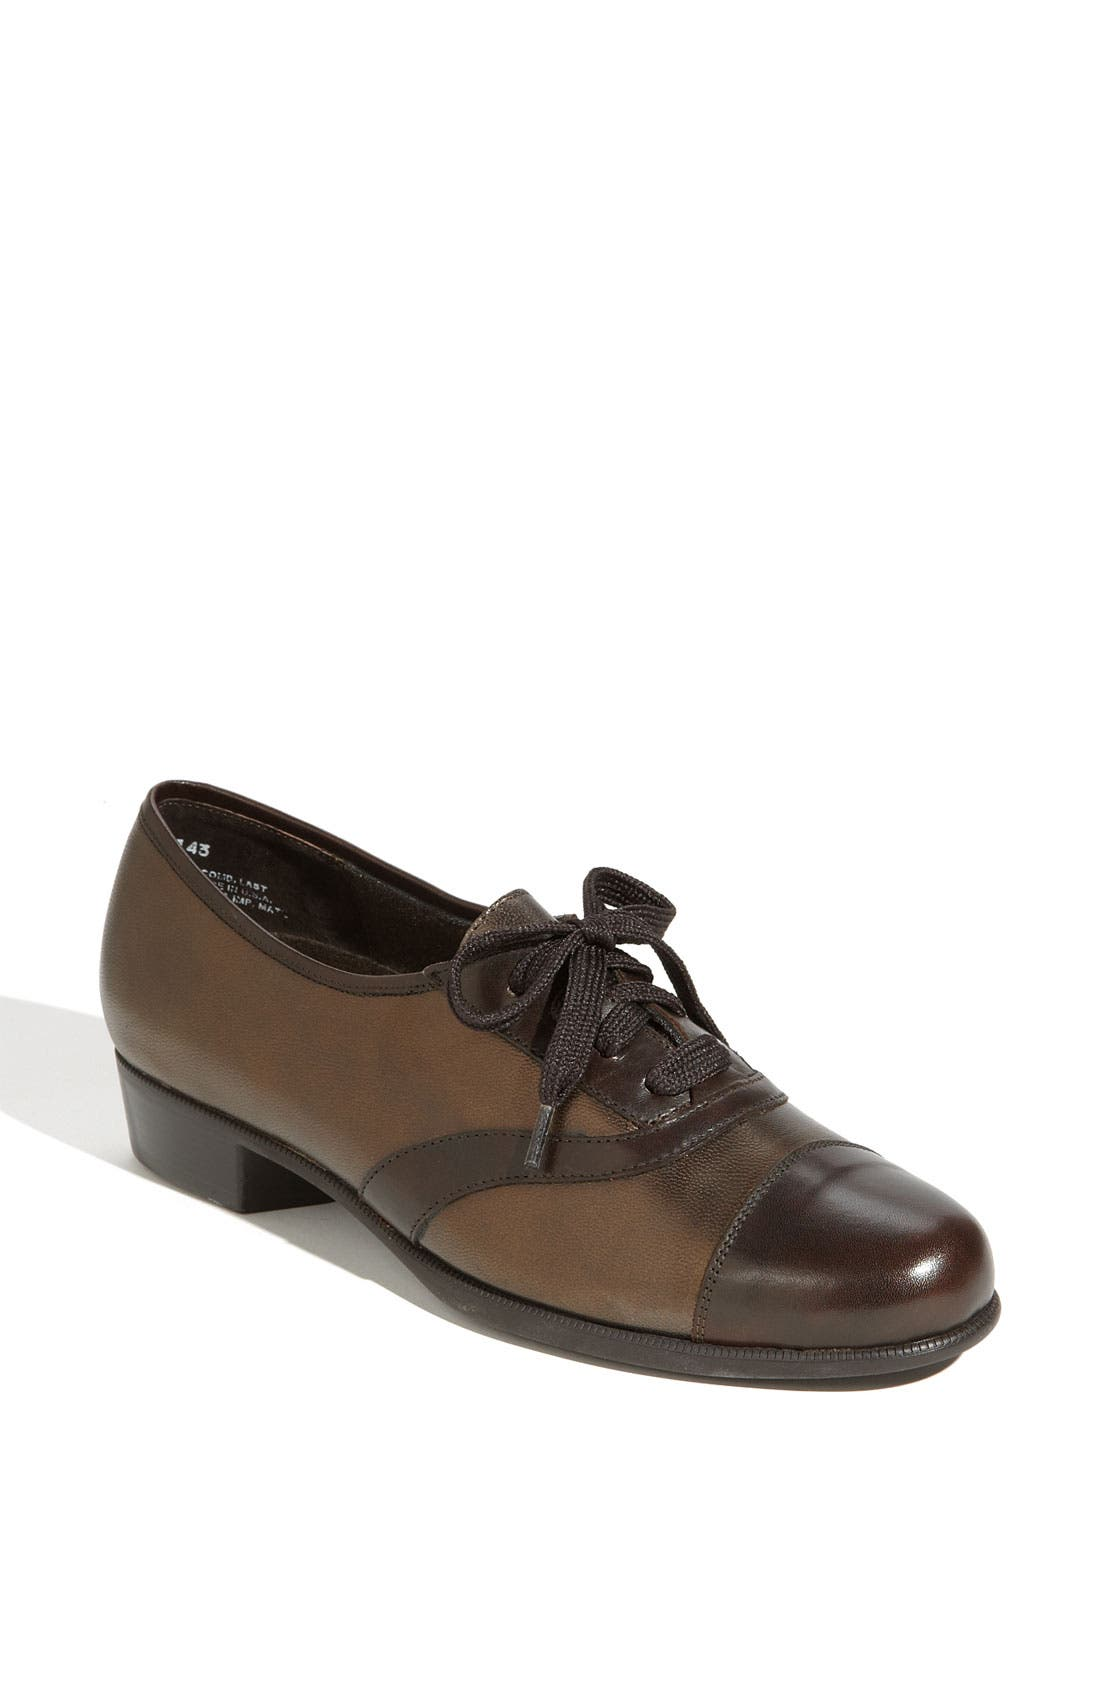 Main Image - Munro 'Ascot' Lace-Up